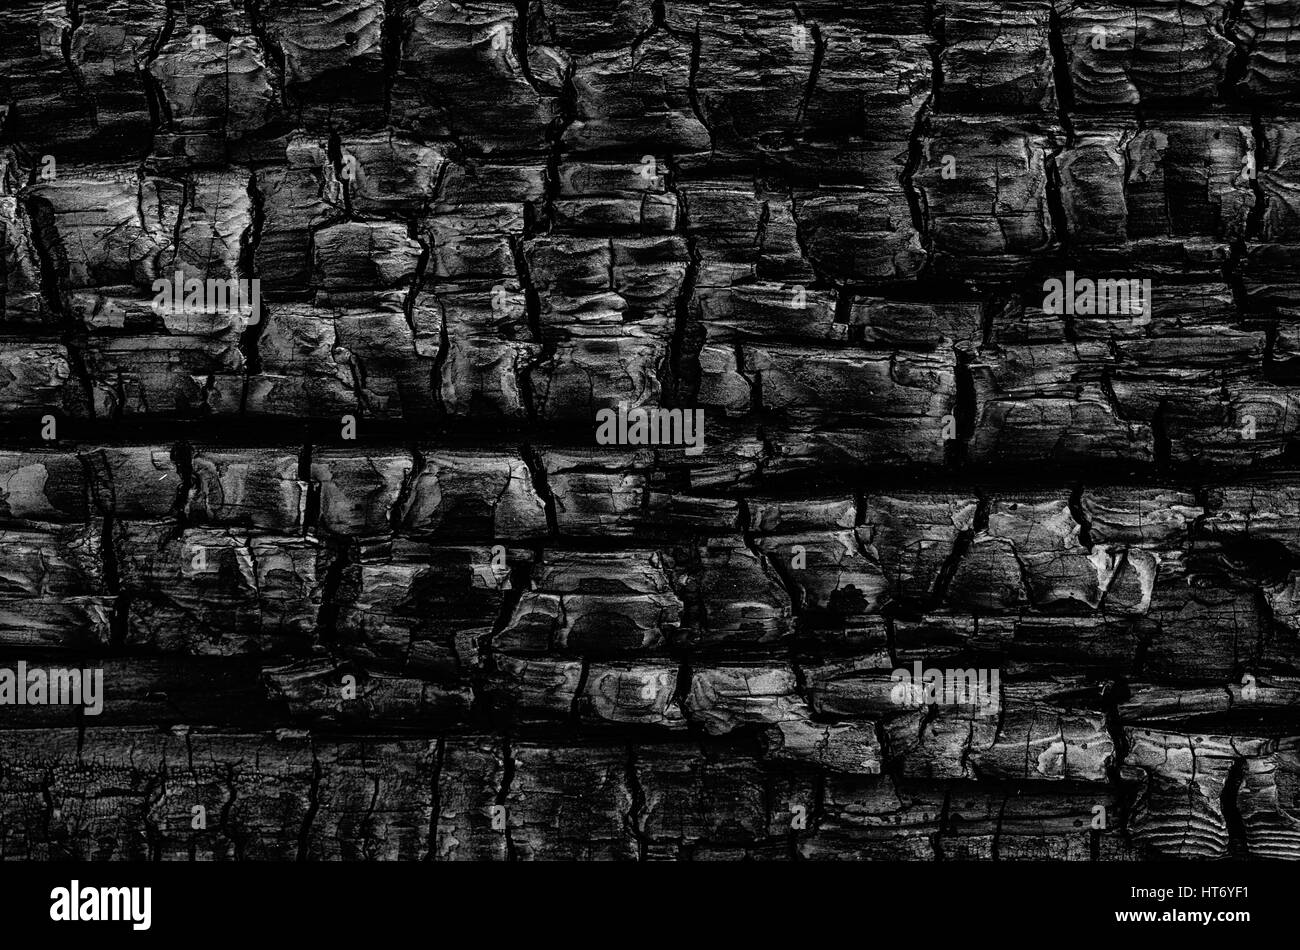 A natural abstract pattern of a wood  log burned in a fire creates a black and white tetured background. - Stock Image